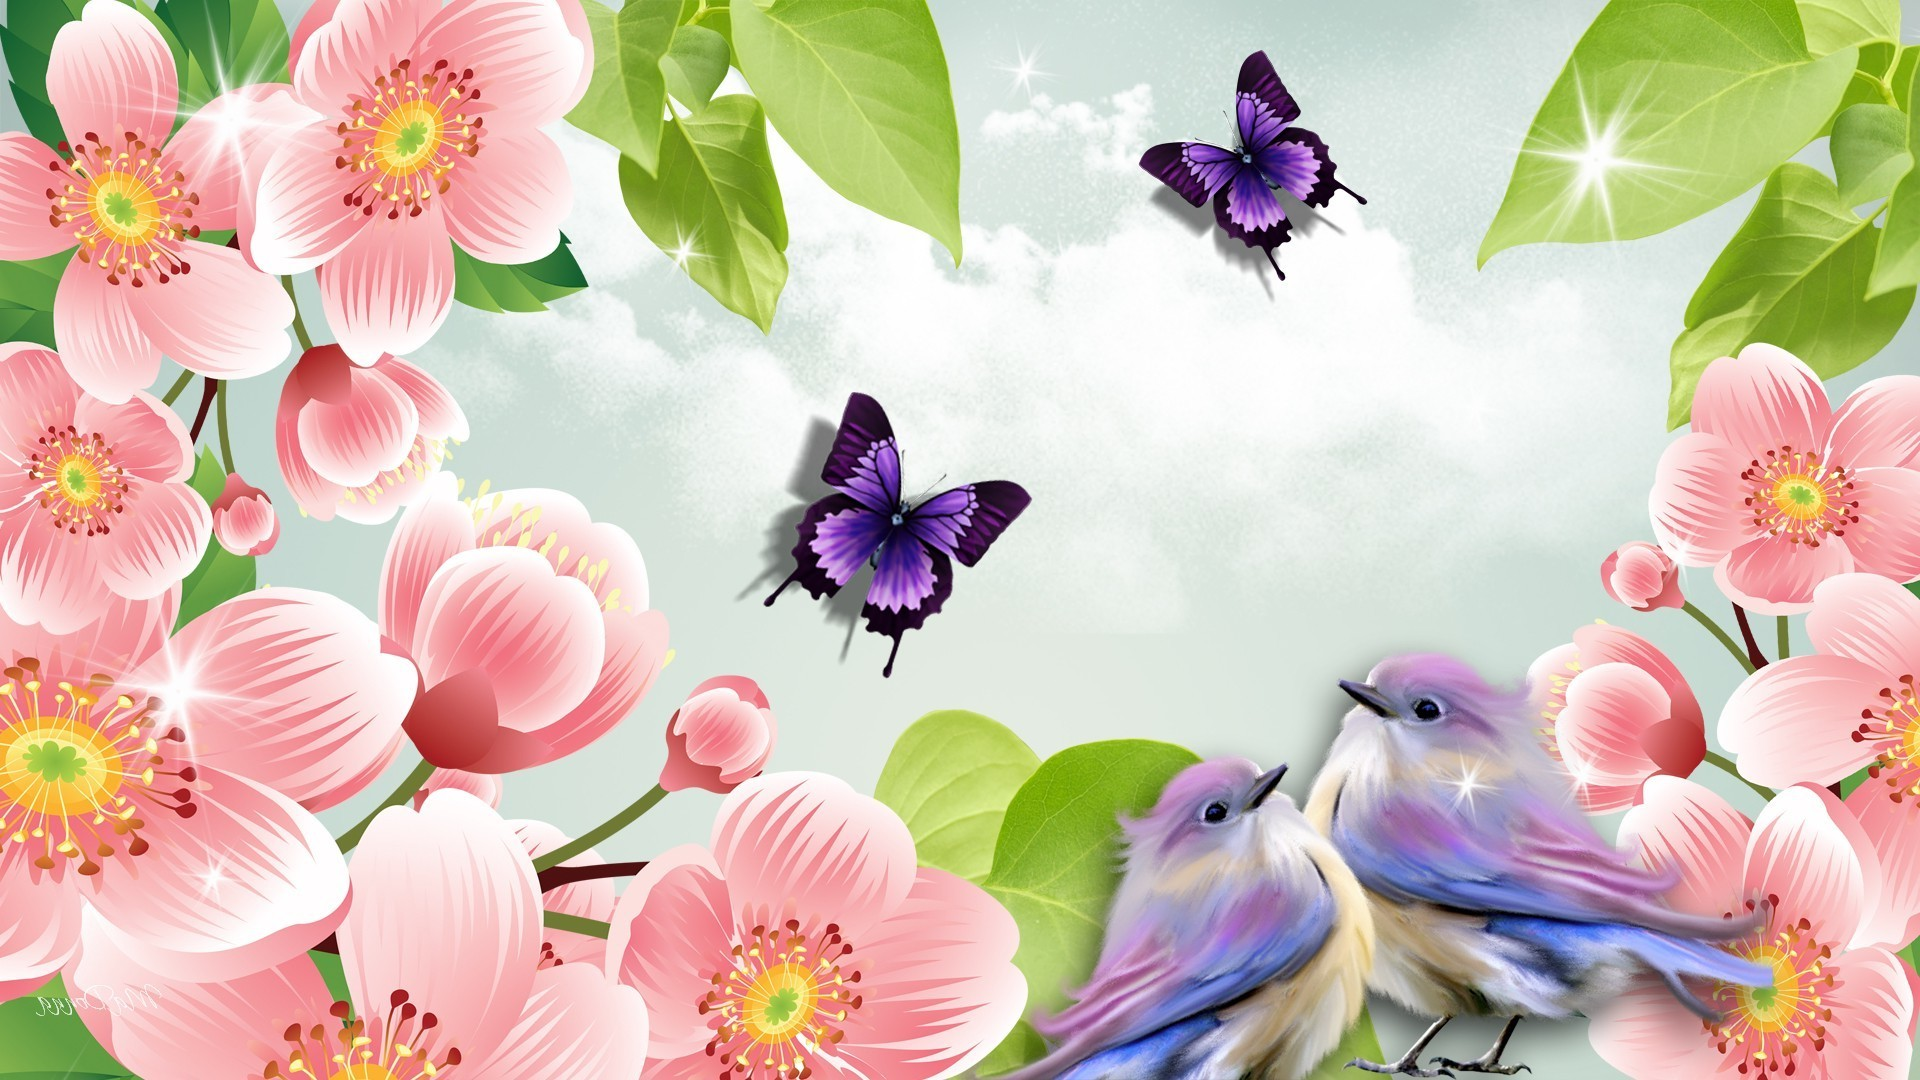 1920x1080 Desktop Spring wallpapers HD free - 438265